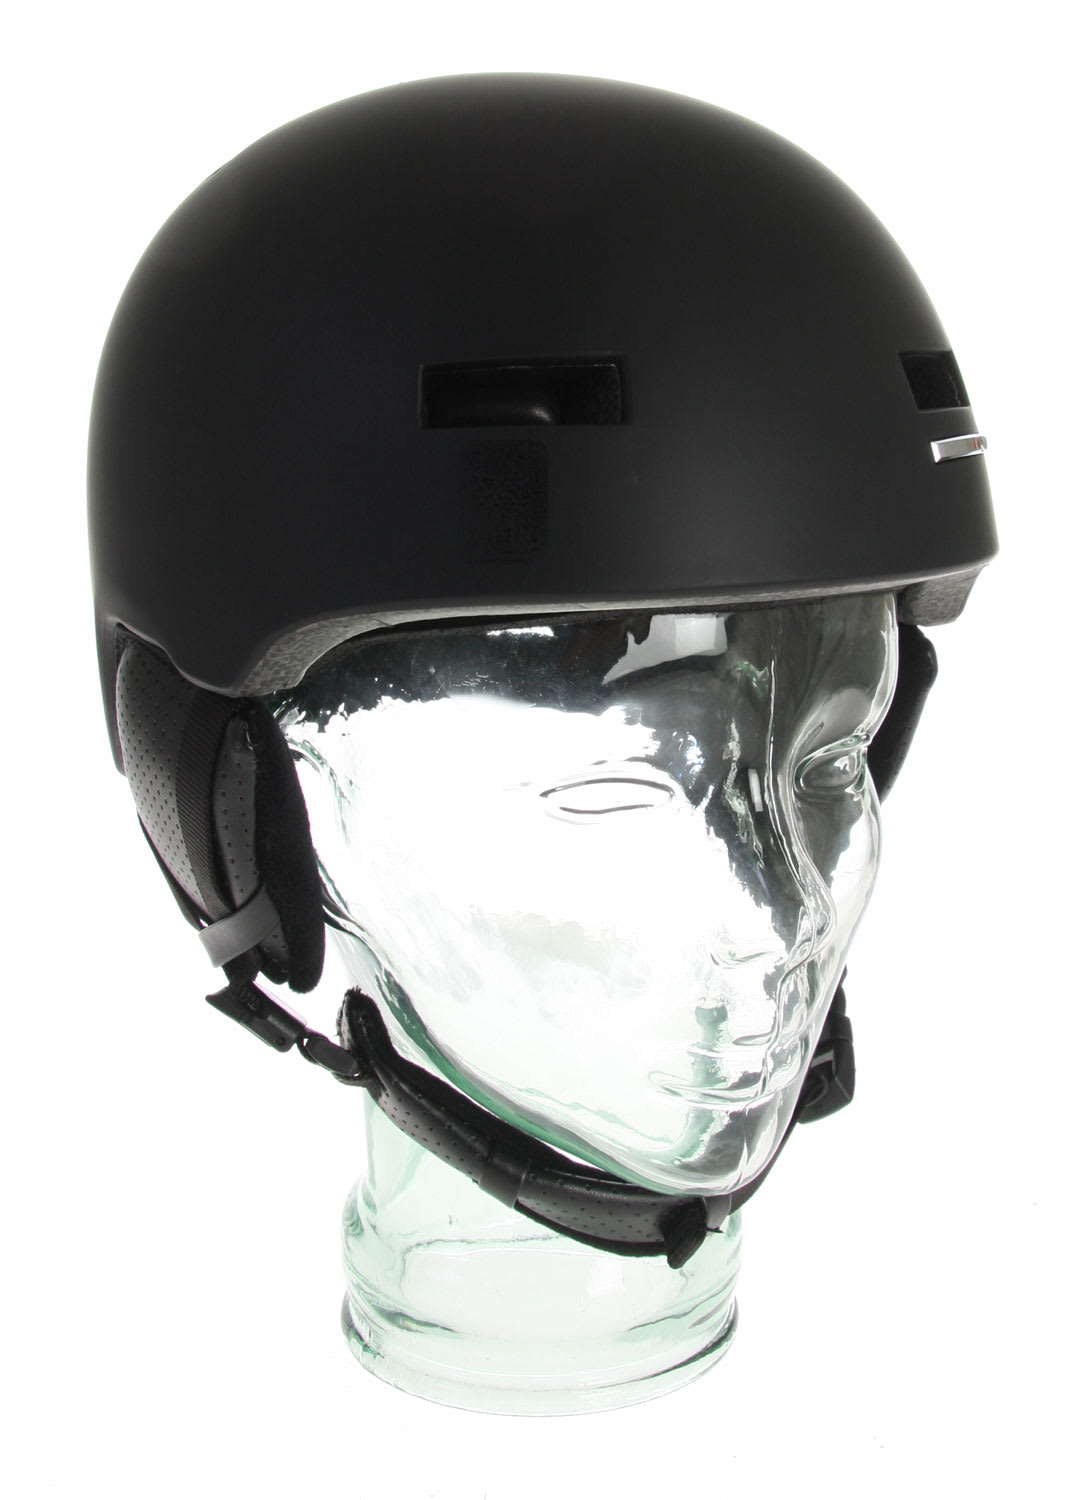 Shop for Giro Shiv Snowboard Helmet Matte Black - Men's